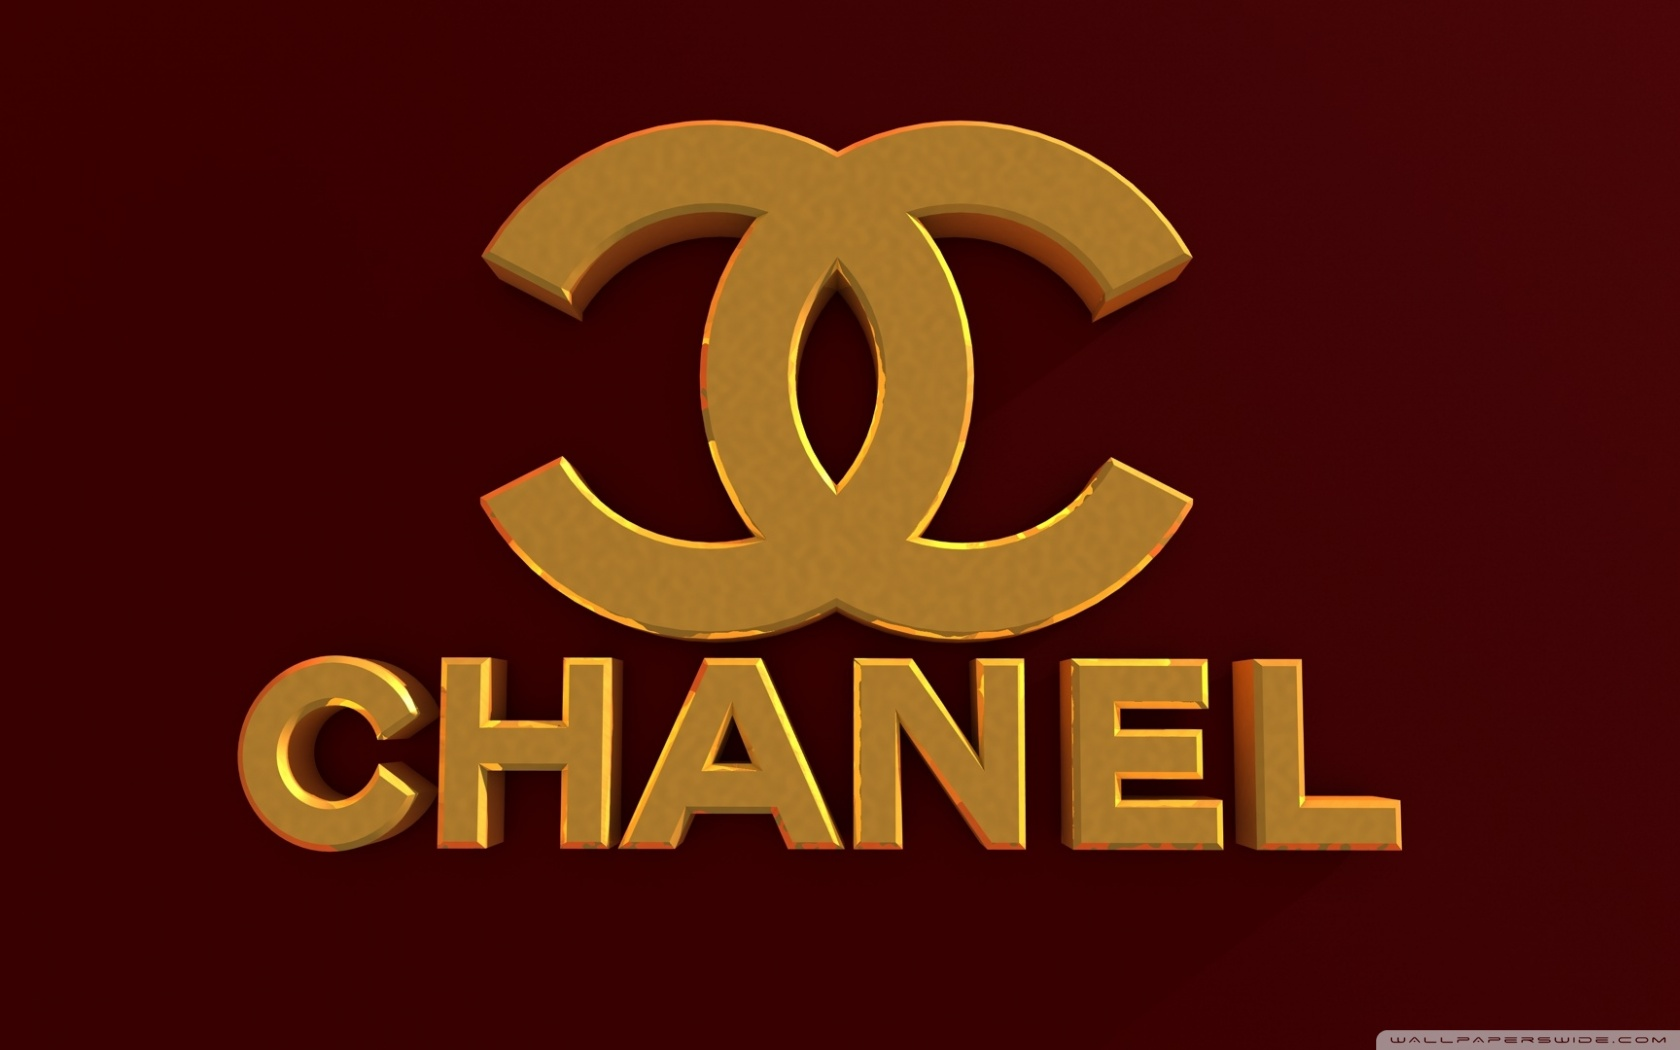 Free Chanel Logo Bordeaux Red phone wallpaper by bigcat93